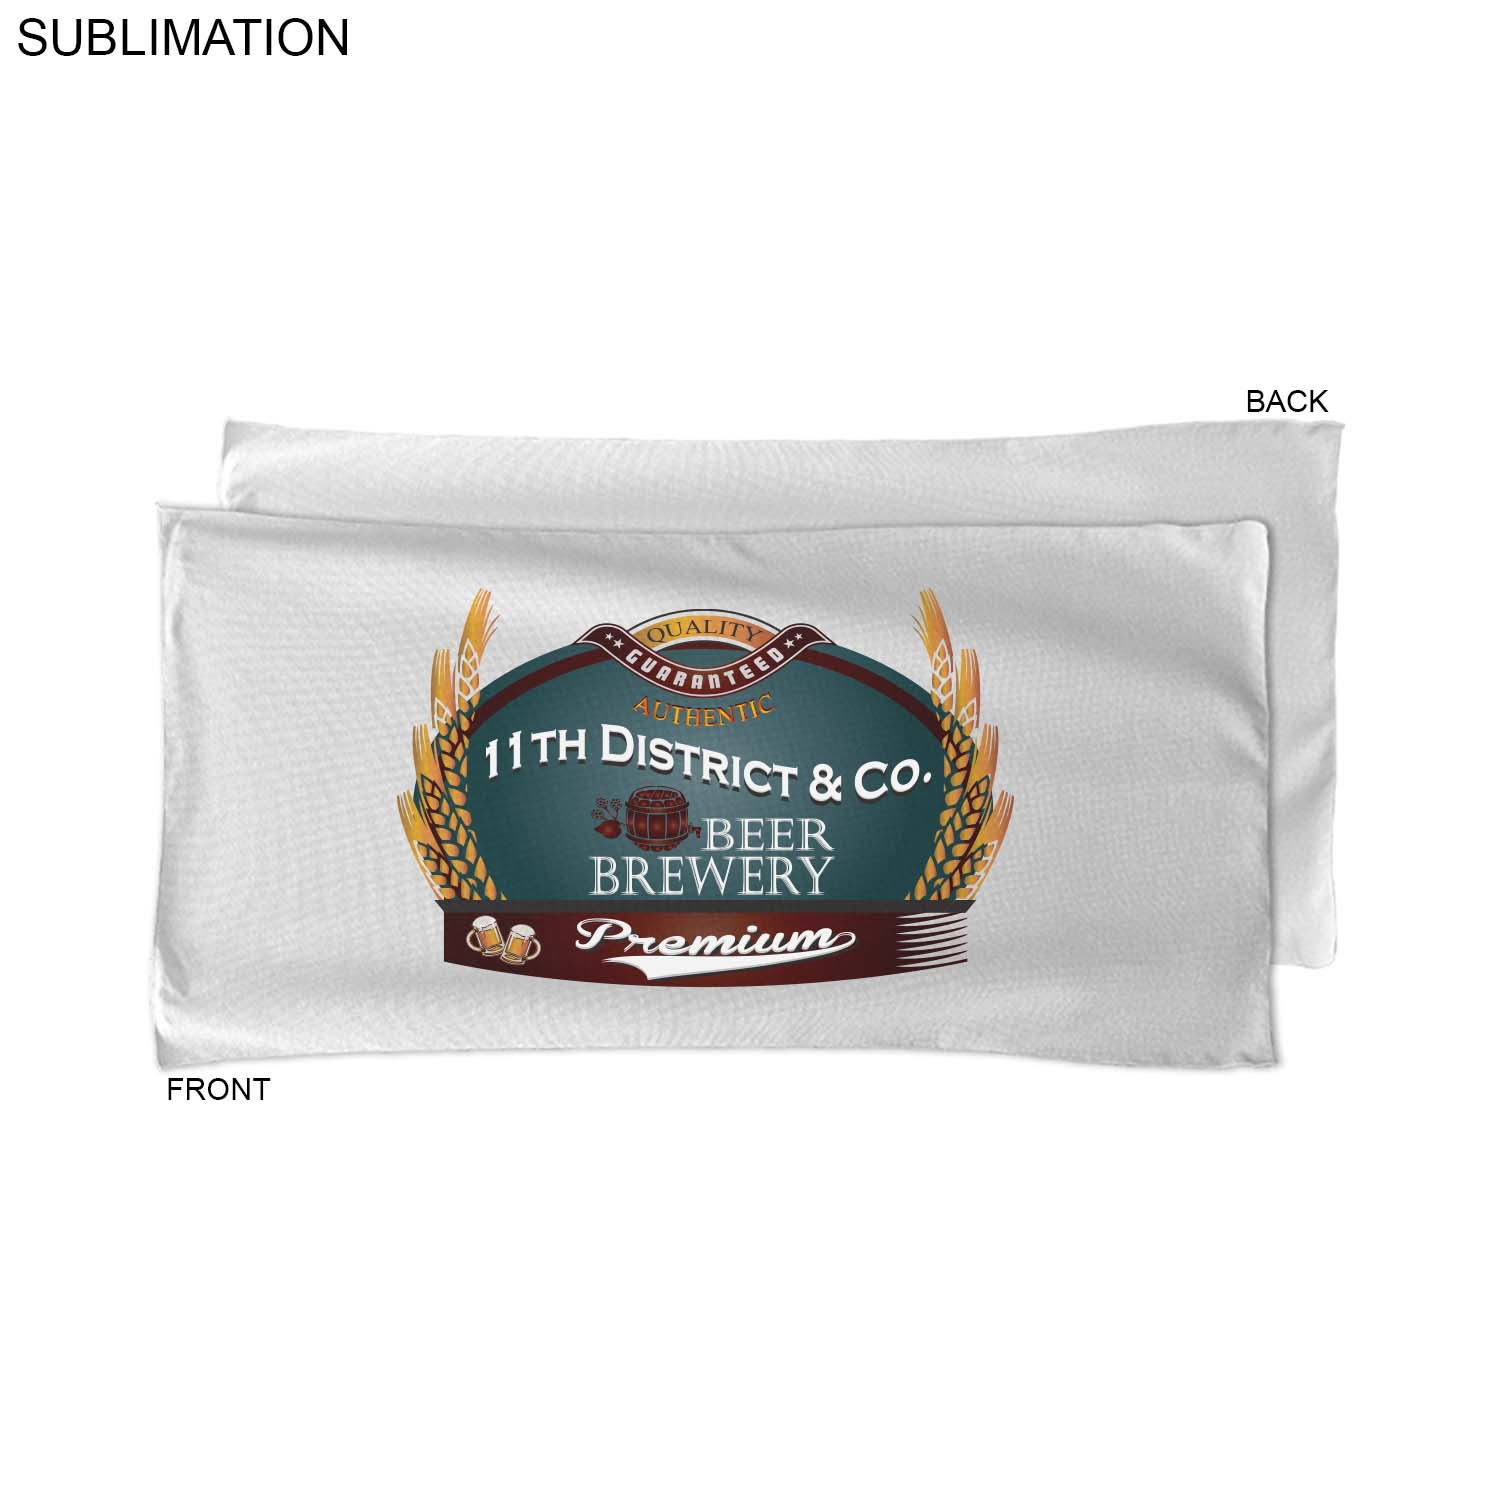 Sublimated Microfiber Terry Beach Towel, 22x44 - Full Colour Imprint (#SU463W-2)